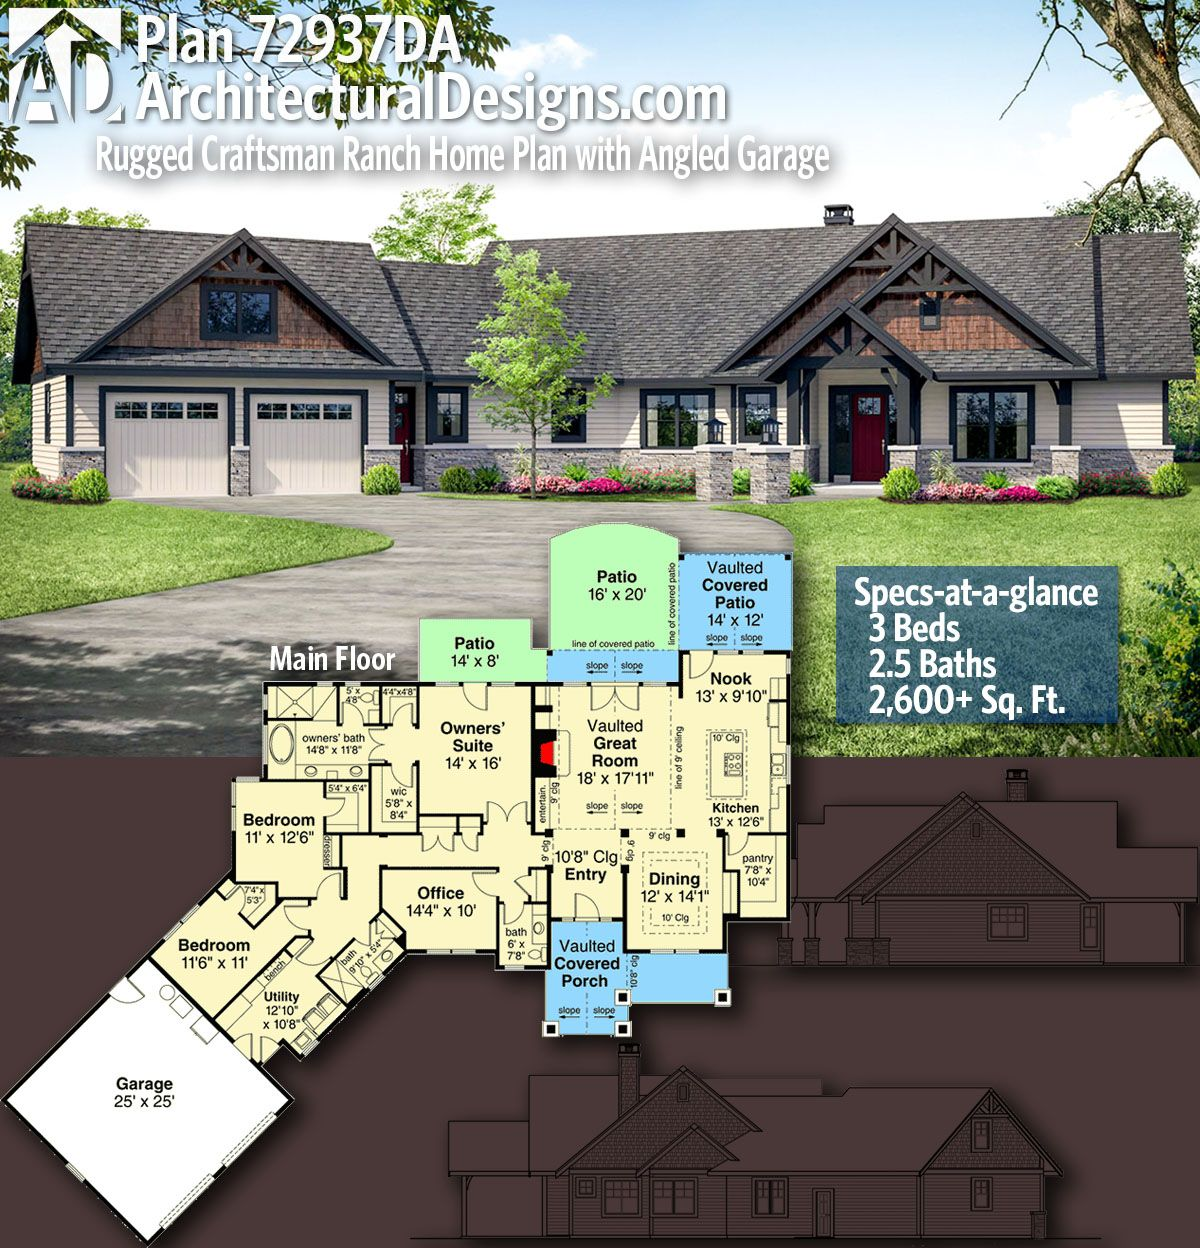 Plan 14632rk Rugged Craftsman With Room Over Garage: Plan 72937DA: Rugged Craftsman Ranch Home Plan With Angled